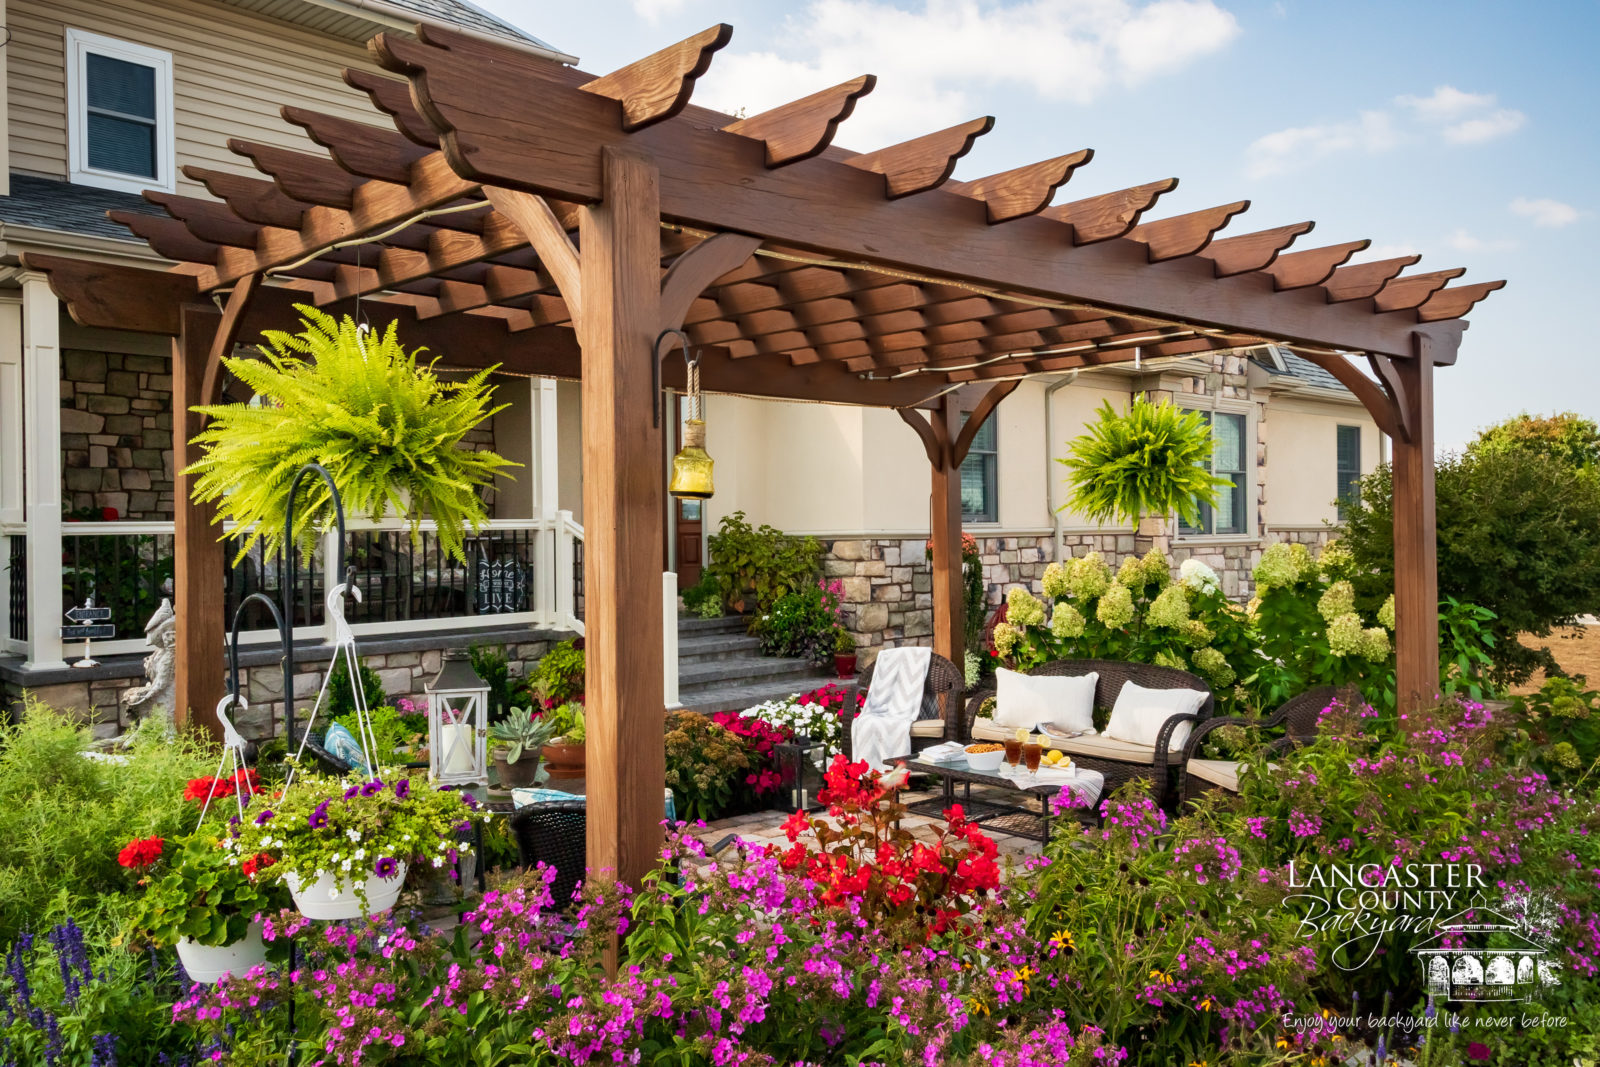 bed and breakfast pergola in lancaster county pa